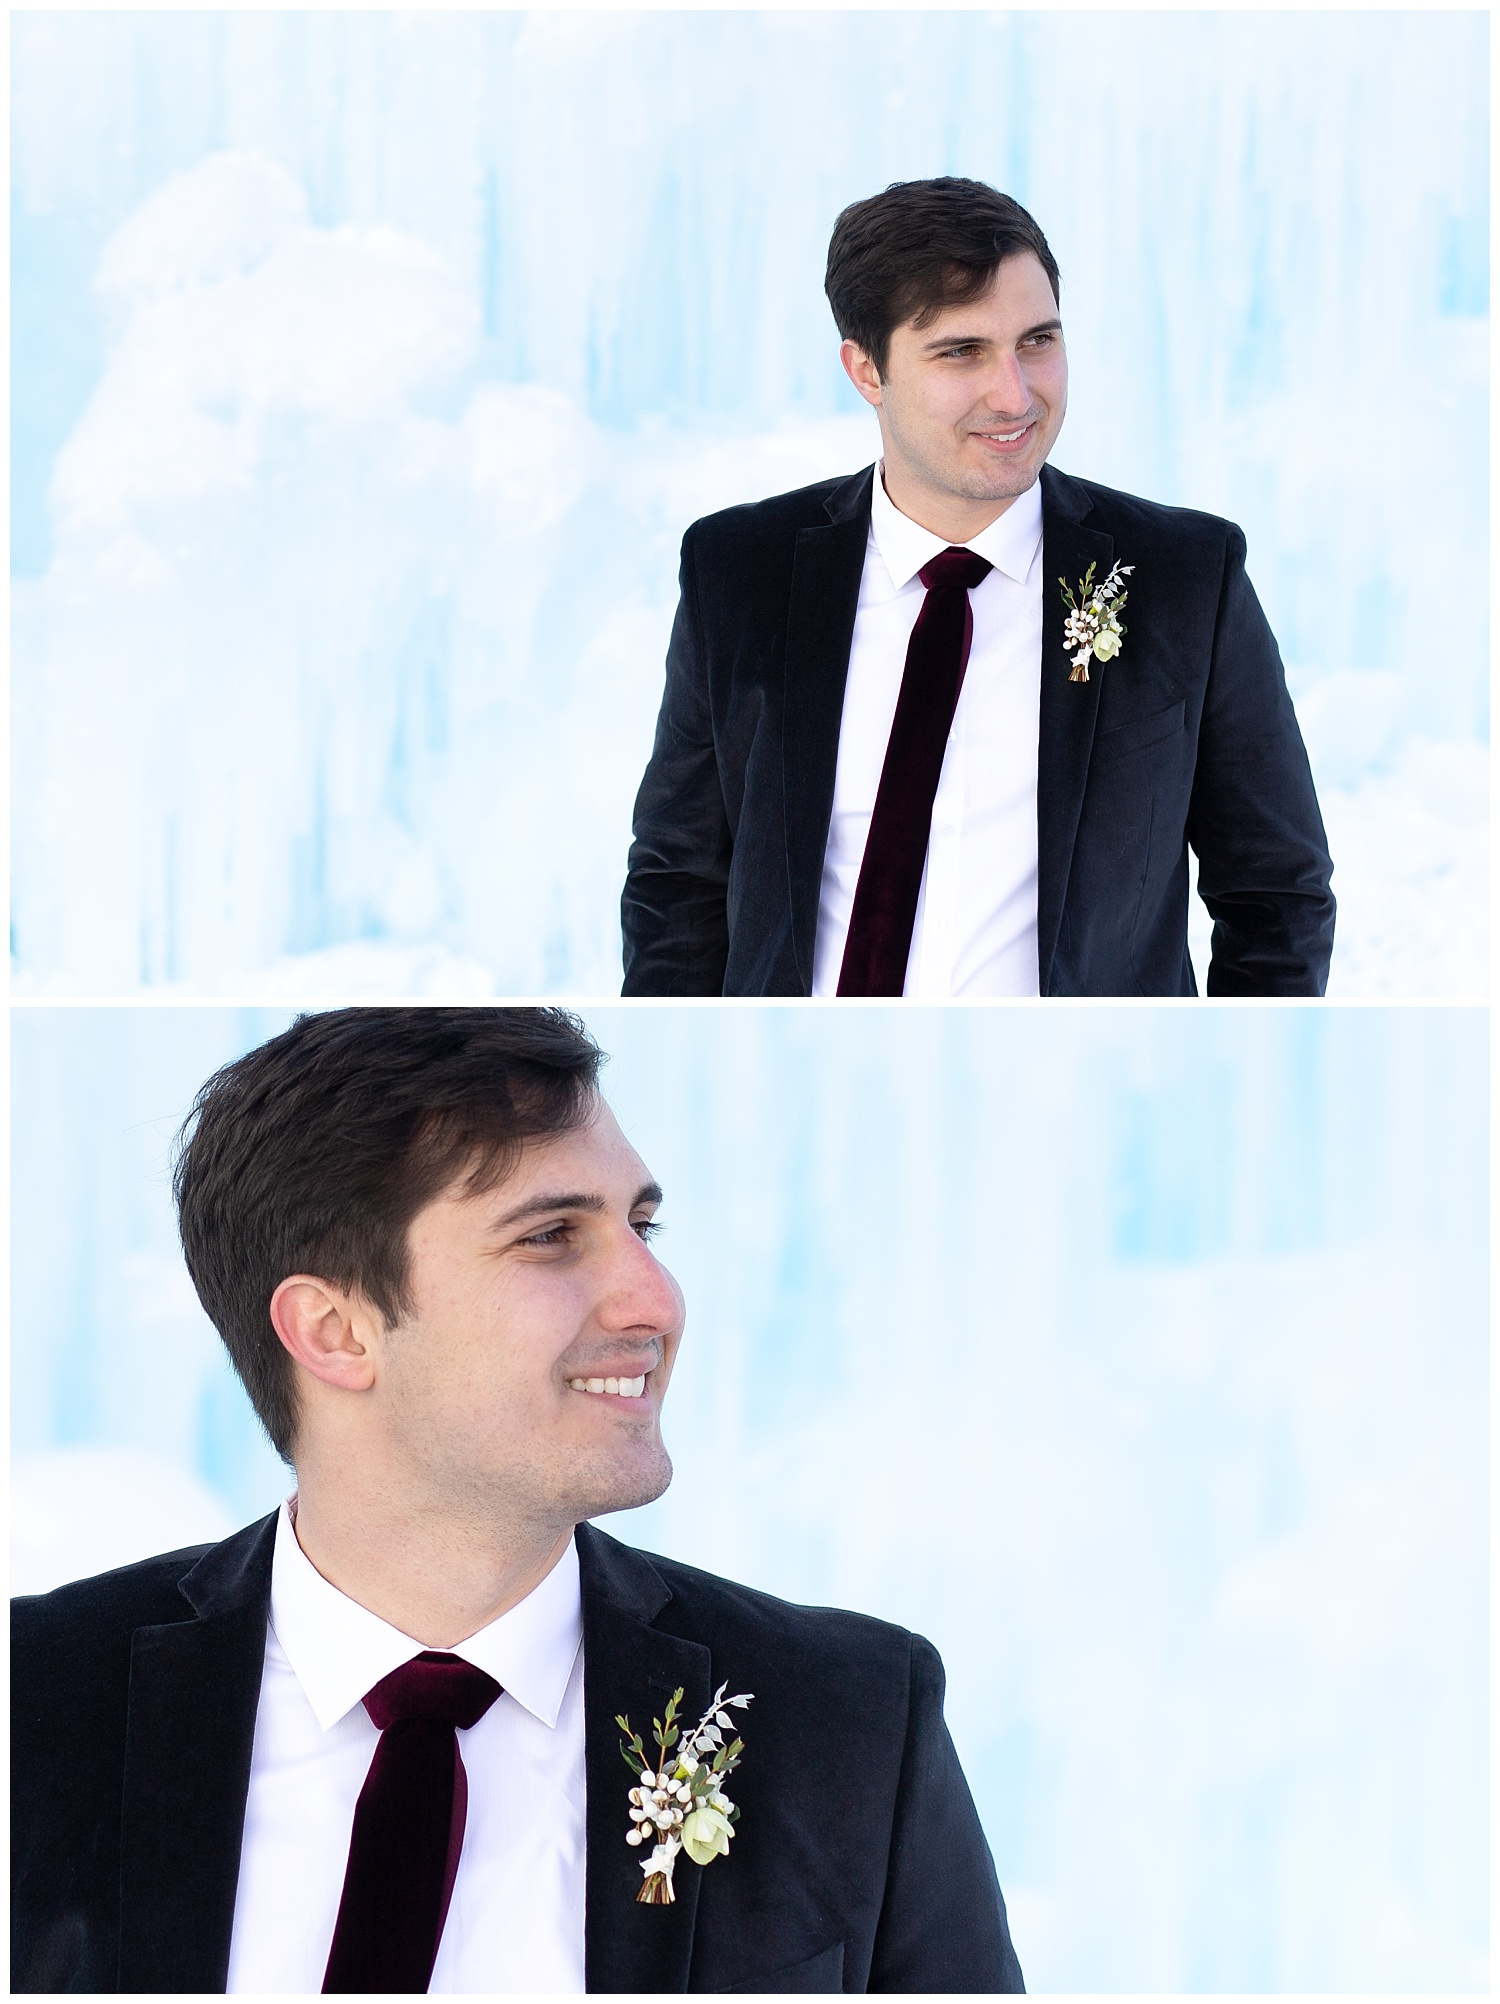 A groom looking to his side and smiling